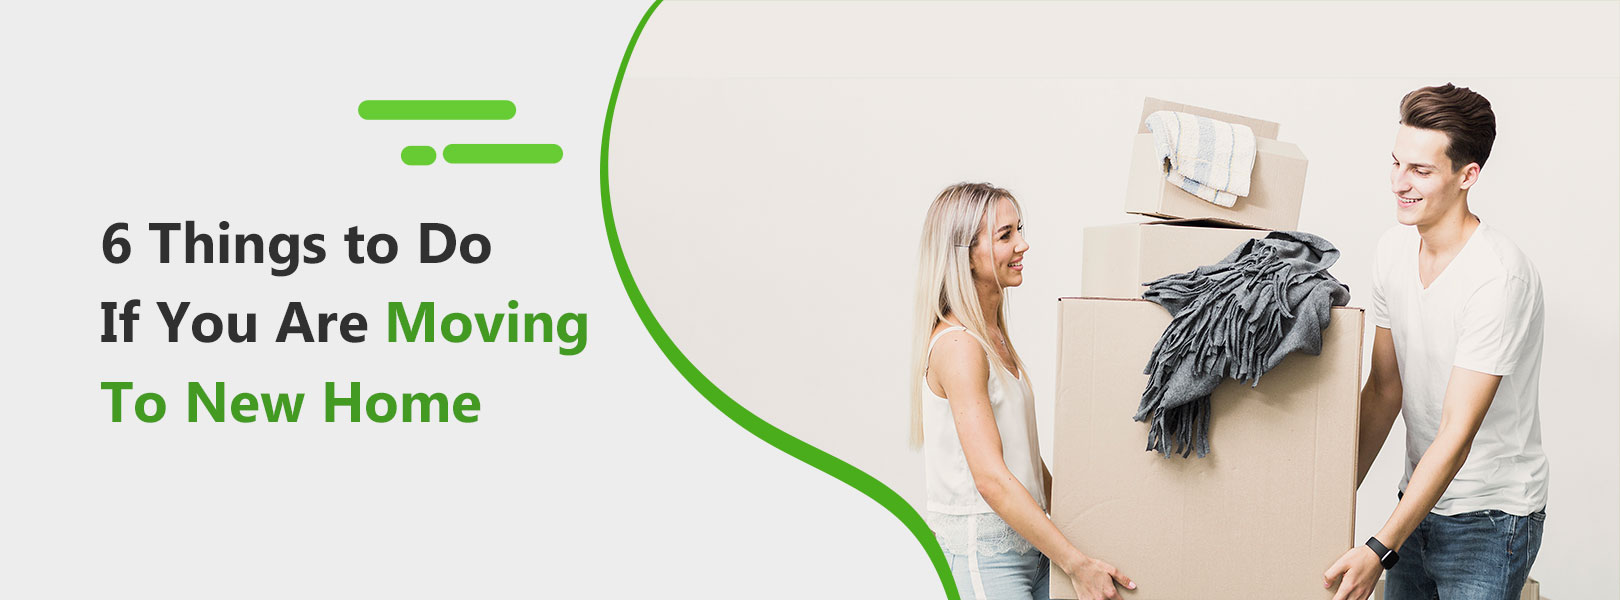 6 Things to Do If You Are Moving To New Home